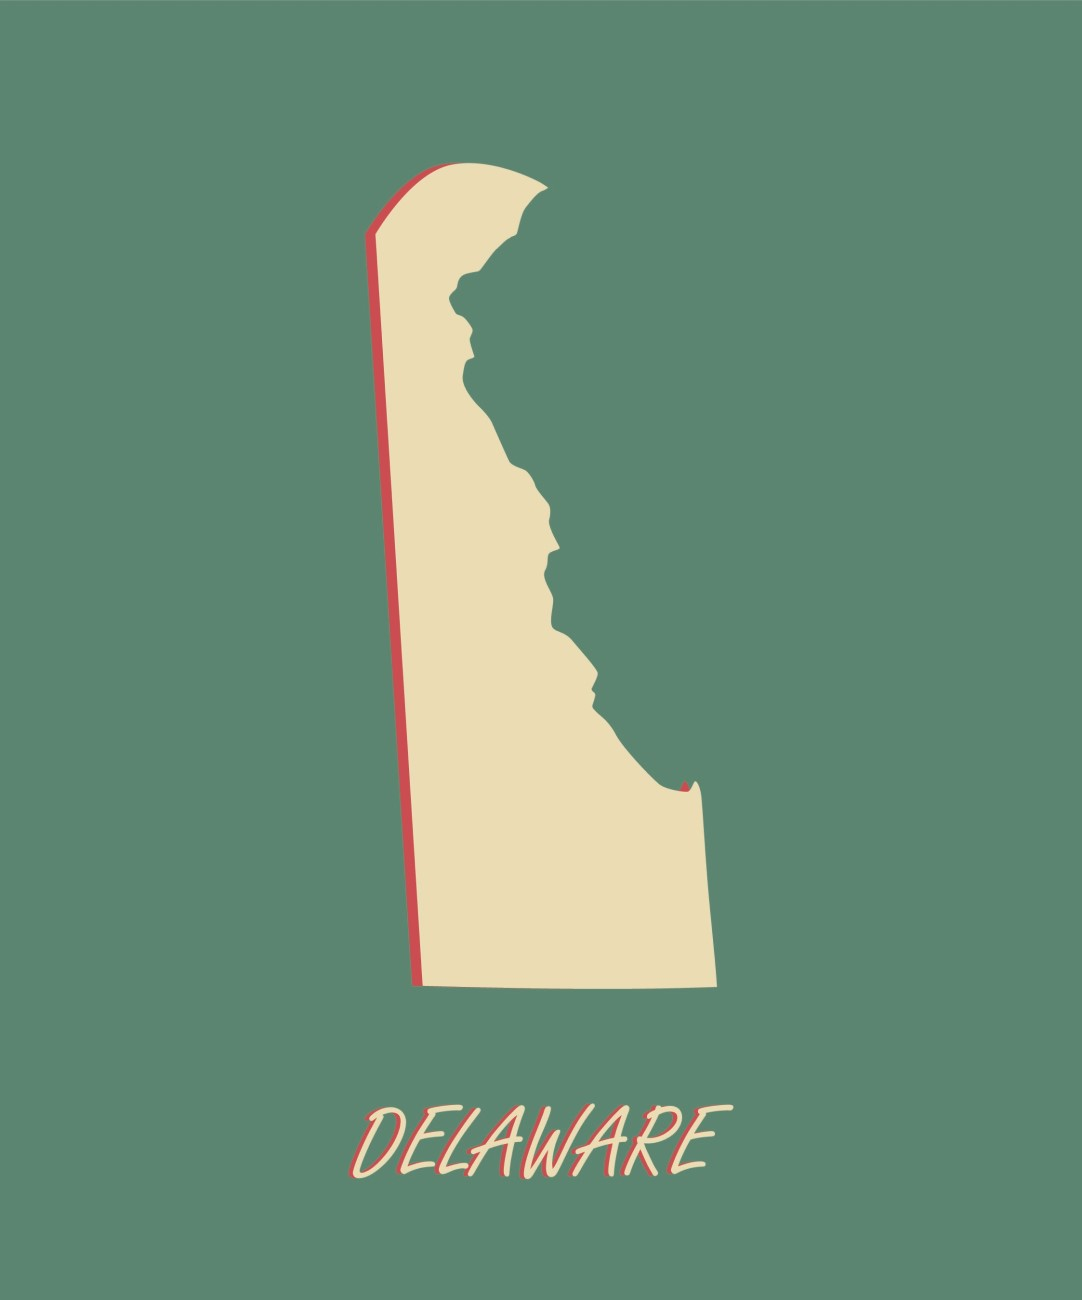 Nanny tax and payroll requirements for Delaware families